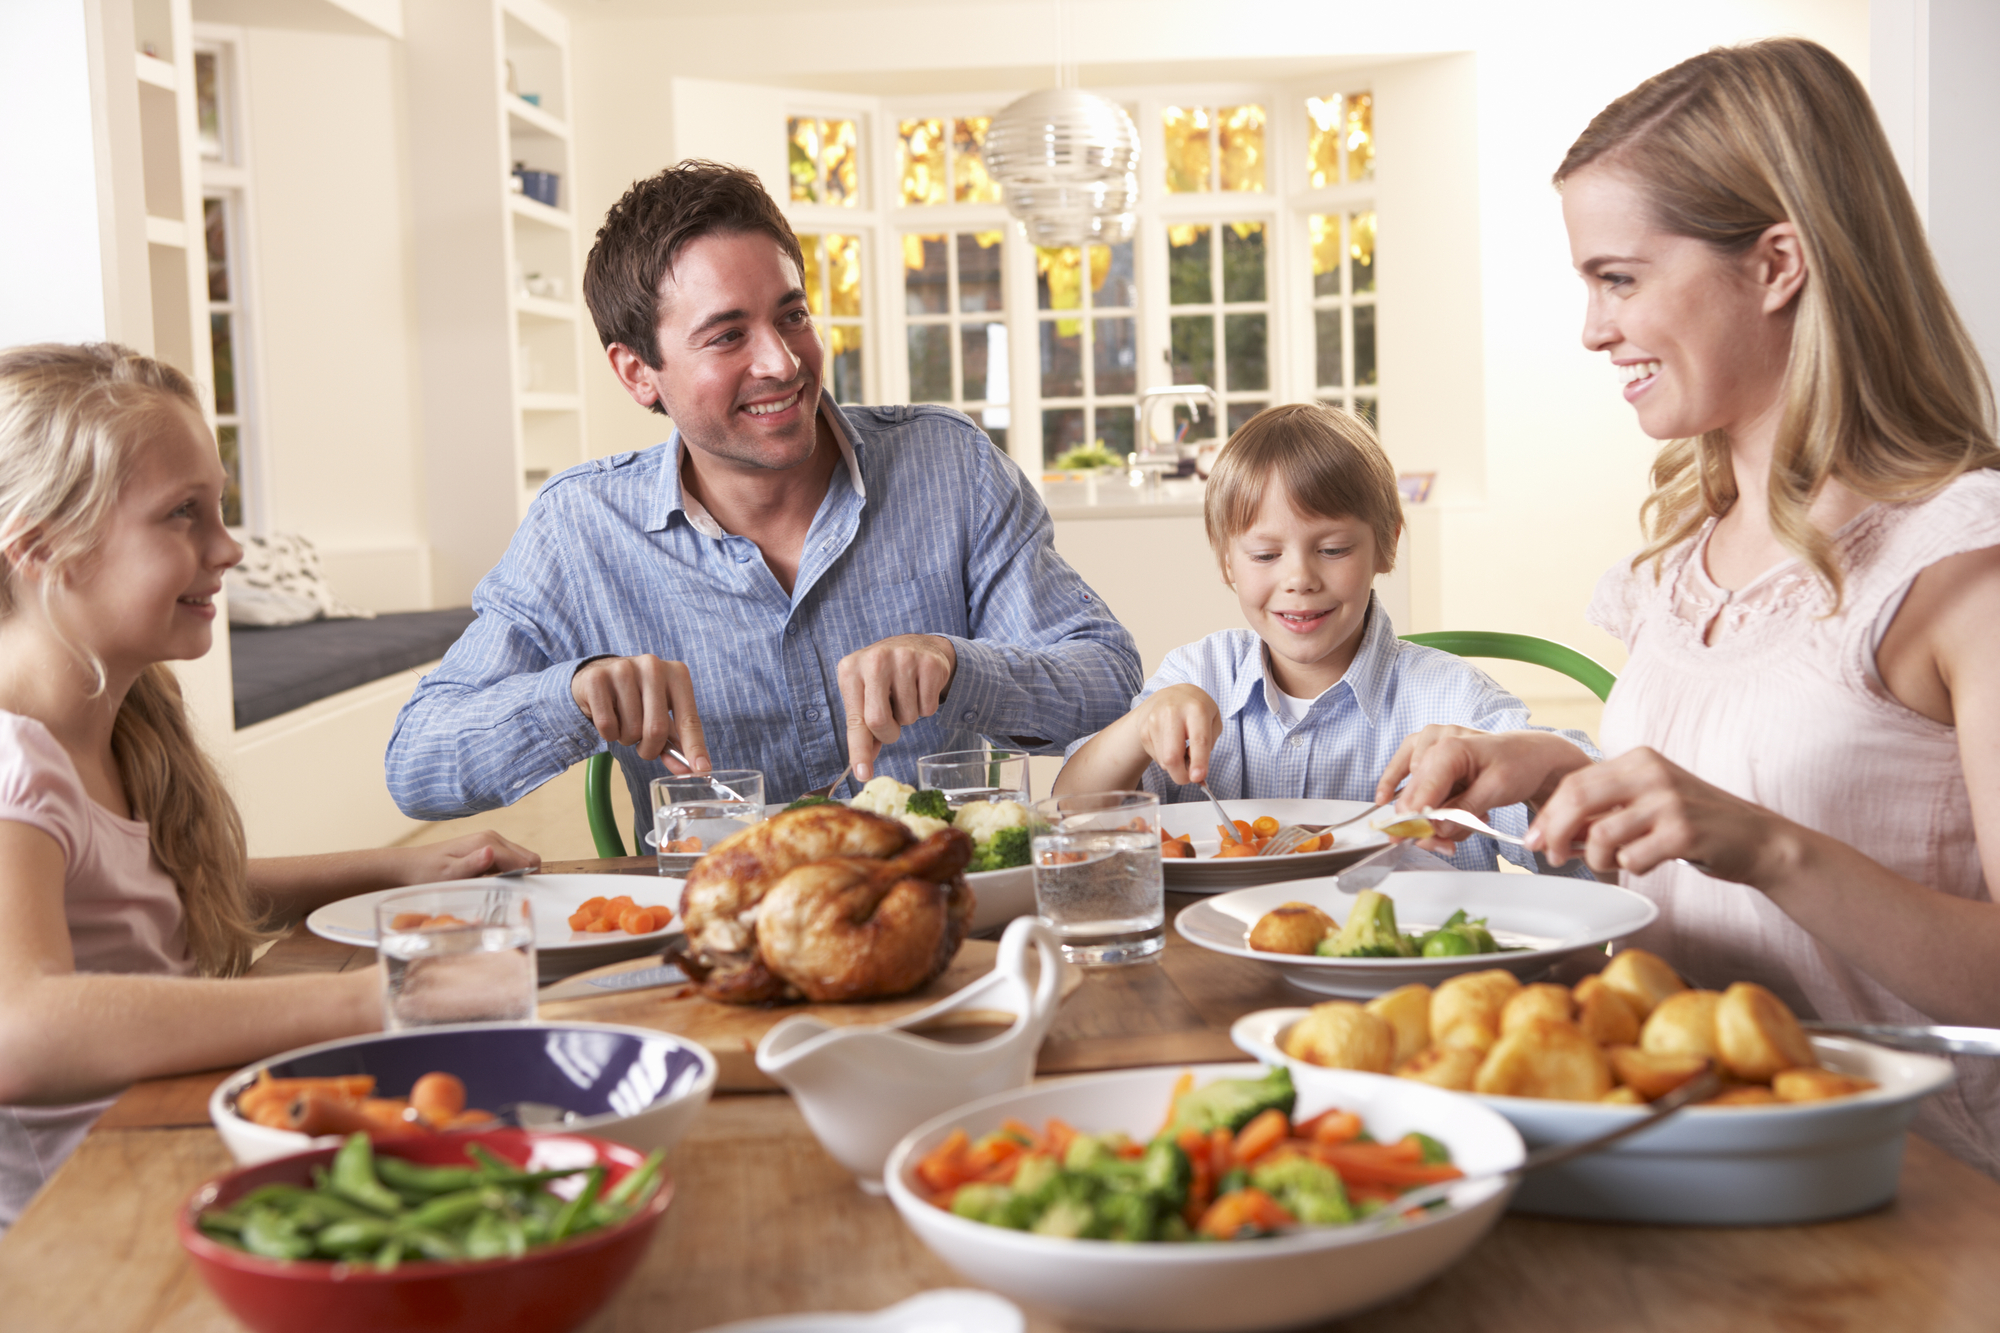 A family enjoys a meal together